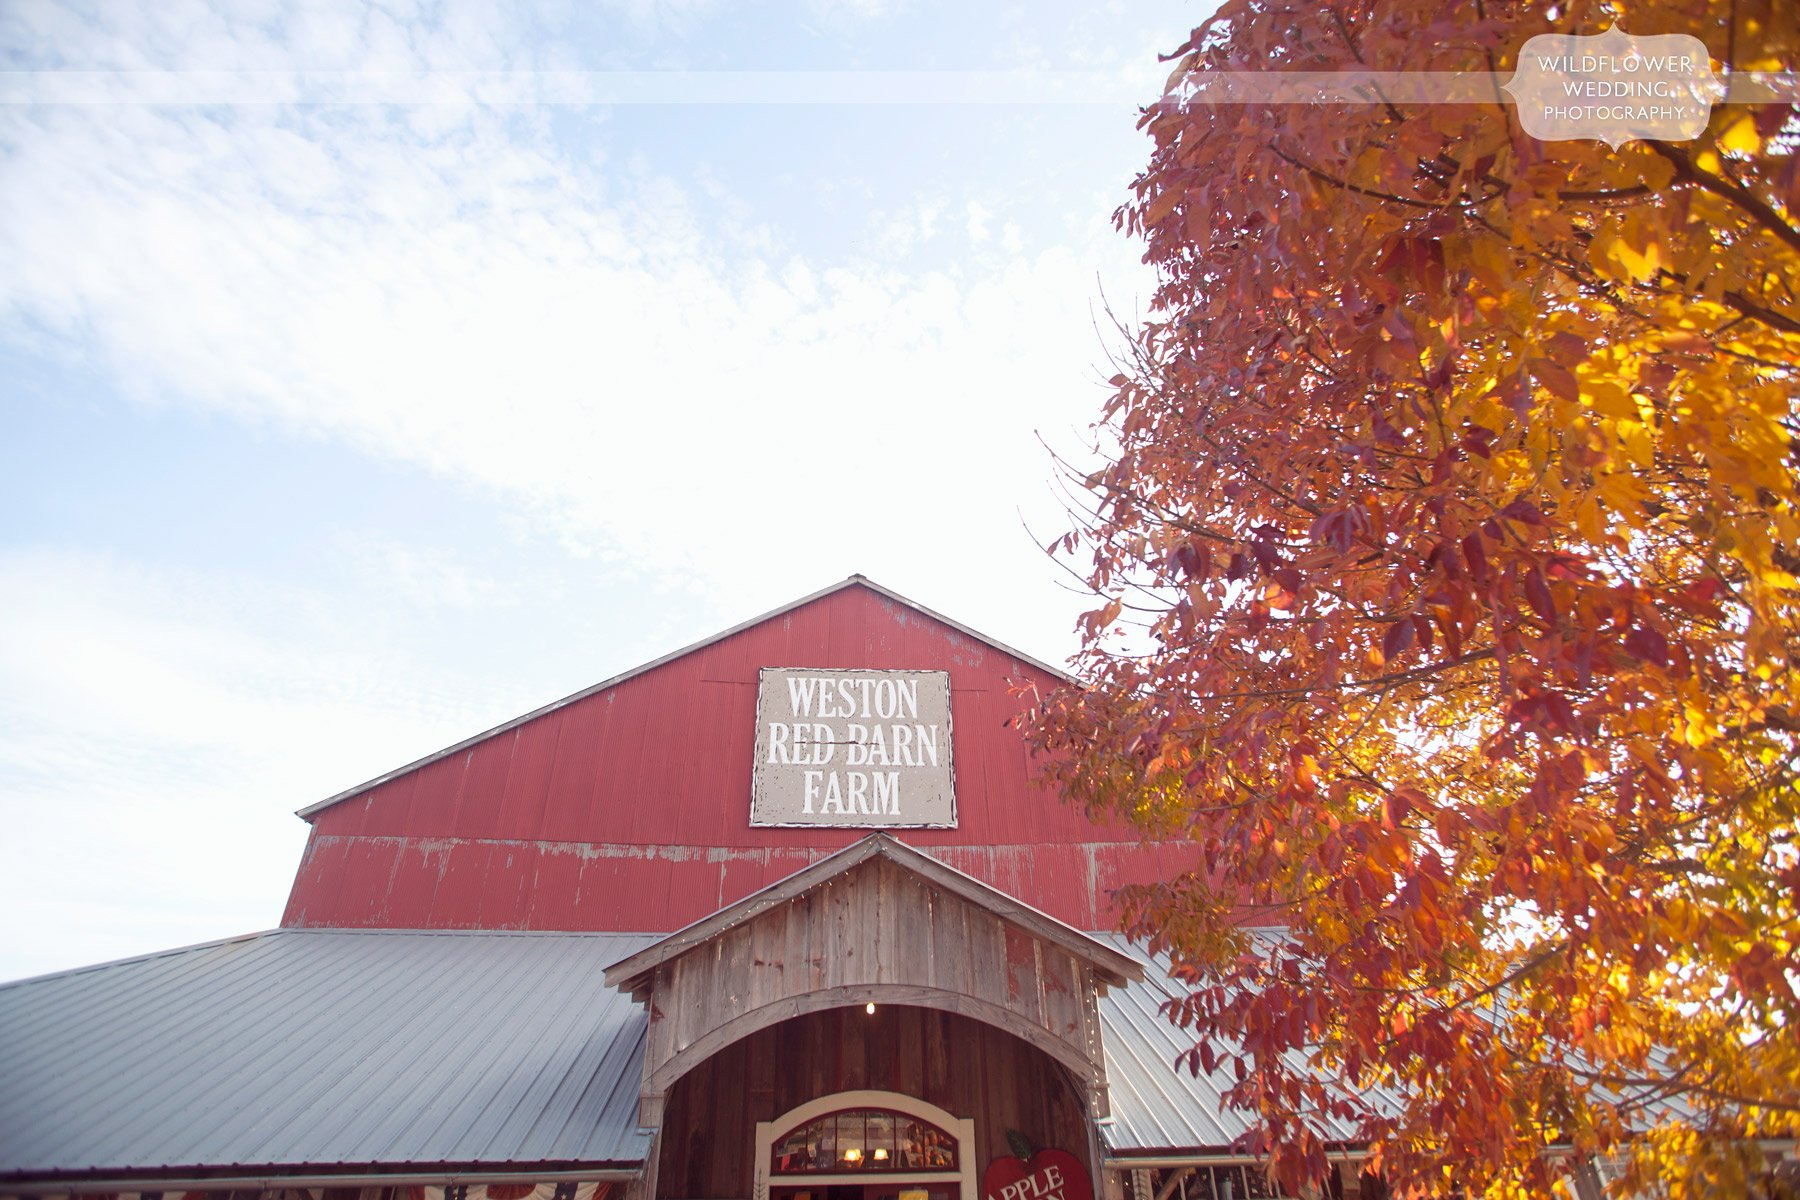 weston-red-barn-wedding-kc-mo-13